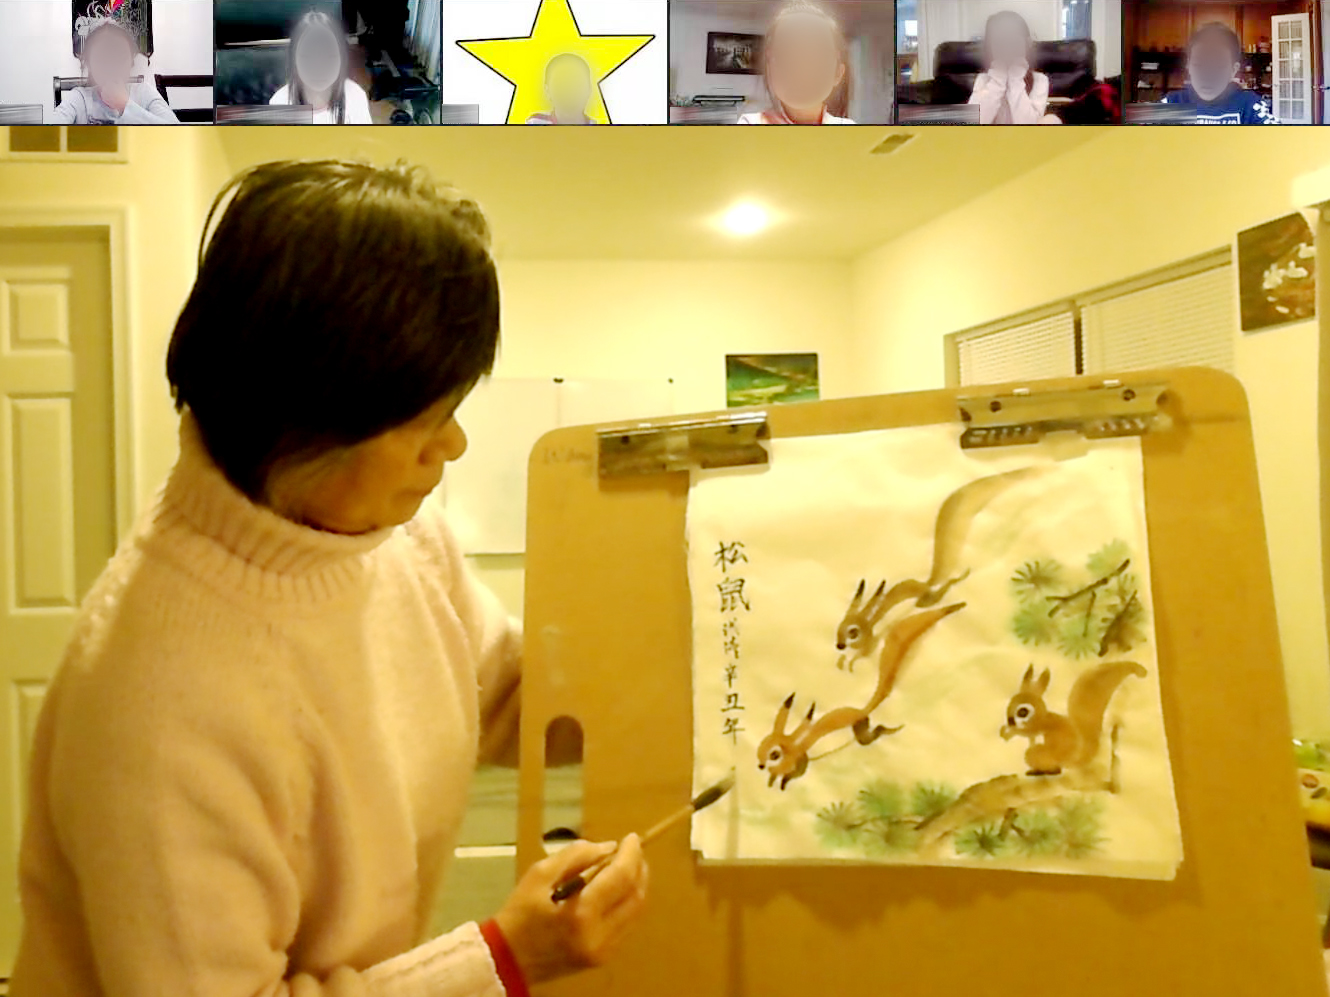 A person painting a picture  Description automatically generated with low confidence